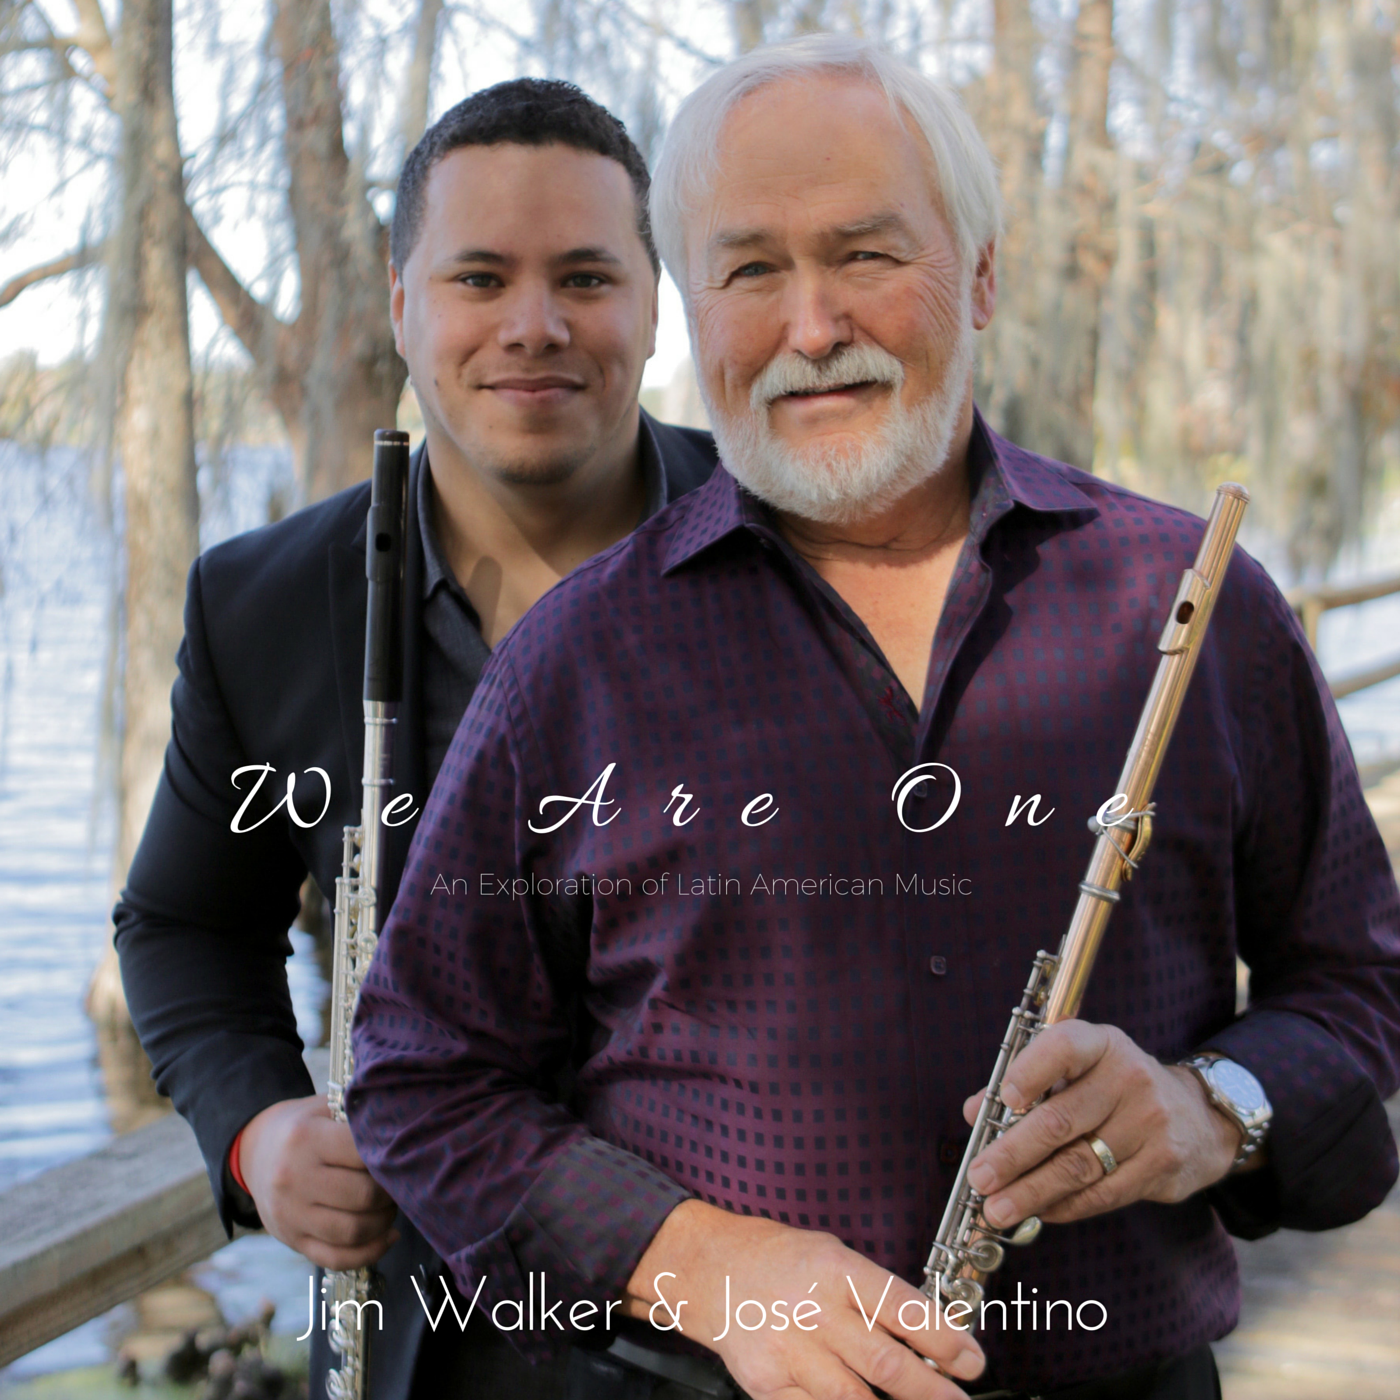 """Album Notes  Iconic flutist, Jim Walker, is internationally recognized for his extraordinary ability to perform virtually any musical context with poise, vibrancy, and authenticity. His credentials include: former Principal flutist for L.A. Philharmonic, 600+ films, participated on two Miles Davis albums, band leader of Free Flight (jazz/classical fusion band), professor of flute at the Coburn School and USC Thornton School of Music at University of Southern California. He travels all over the world inspiring and cultivating flutists to become multi-faceted musicians, to appreciate the vastness of music in cultures, and to propel the flute to new musical heights.  In 2013, Jim became intrigued with the vast richness of diversity existing among Latin American cultures and the unity that is present among them. His acquisition of learning about the plethora of folkloric rhythms and stylistic variances of flute playing in Latin-based genres ignited a burning passion to embark on a musical project that would (1) portray the beauty, diversity, and unity of Latin American cultures; (2) display the integration of Latin cultures with other cultural regions (i.e. U.S.A., Middle East, Ireland, West African), and; (3) expand the repertoire of flute music to provide opportunity for Classical flutists to learn and appreciate flute music in ethno-musical contexts. To make this project a reality, Jim Walker teamed up with Puerto Rican composer/producer/flutist, José Valentino, to create 15 exciting cross-cultural compositions that encompasses a musical celebration of 20+ cultures from around the world supplemented with the technical demand of Classical music, rhythmic prowess of Afro-Latin American drumming, improvisational spirit of Jazz music, tinges of Middle Eastern, Irish, and Chinese musical phrasings, and the enthusiasm of two generations colliding as one spirit! Thus, the project was completed in 2016 and appropriately entitled: """"We Are One: An Exploration of Latin American"""